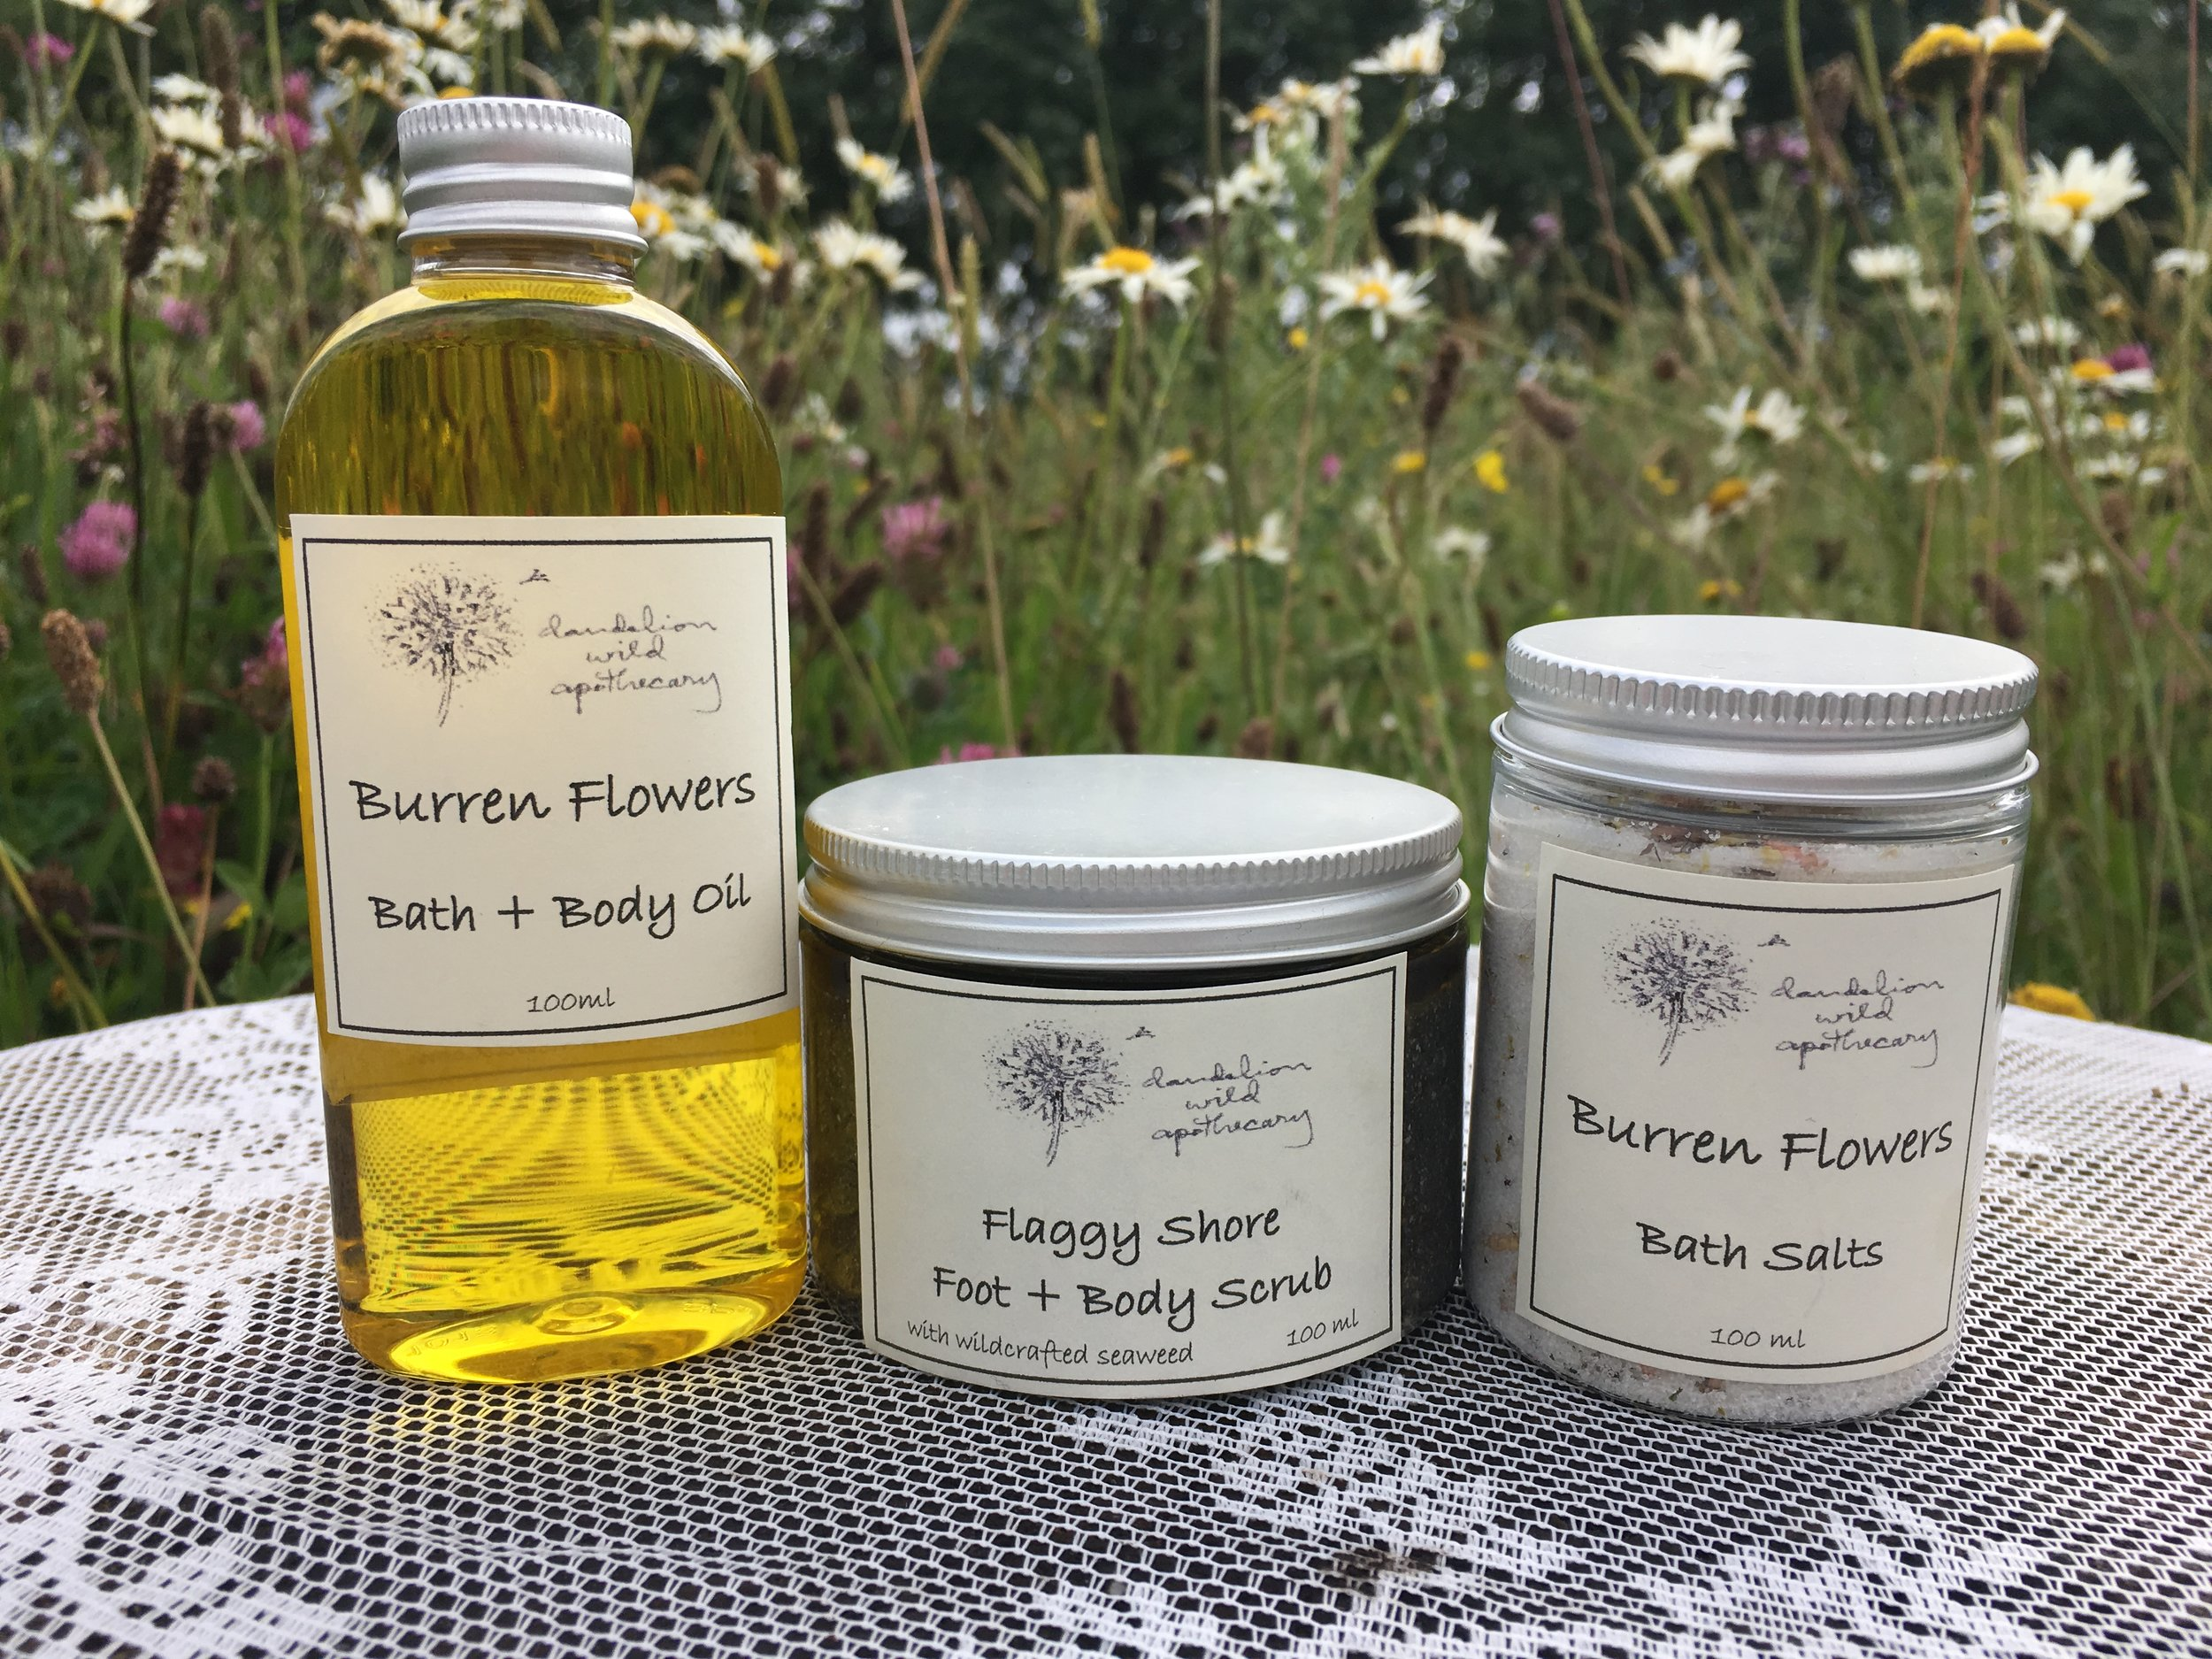 -   Burren Flowers Body Oil: infused with wild herbs and ethically harvested flowers of the Burren hedgerows and meadows.                                                     Flaggy Shore Foot Scrub: with sand and seaweed collected from that breathtaking shore along the Wild Atlantic Way.                                                       Burren Flowers Bath Salts: infused with the wild herbs and ethically harvested flowers of the Buren hedgerows and meadows